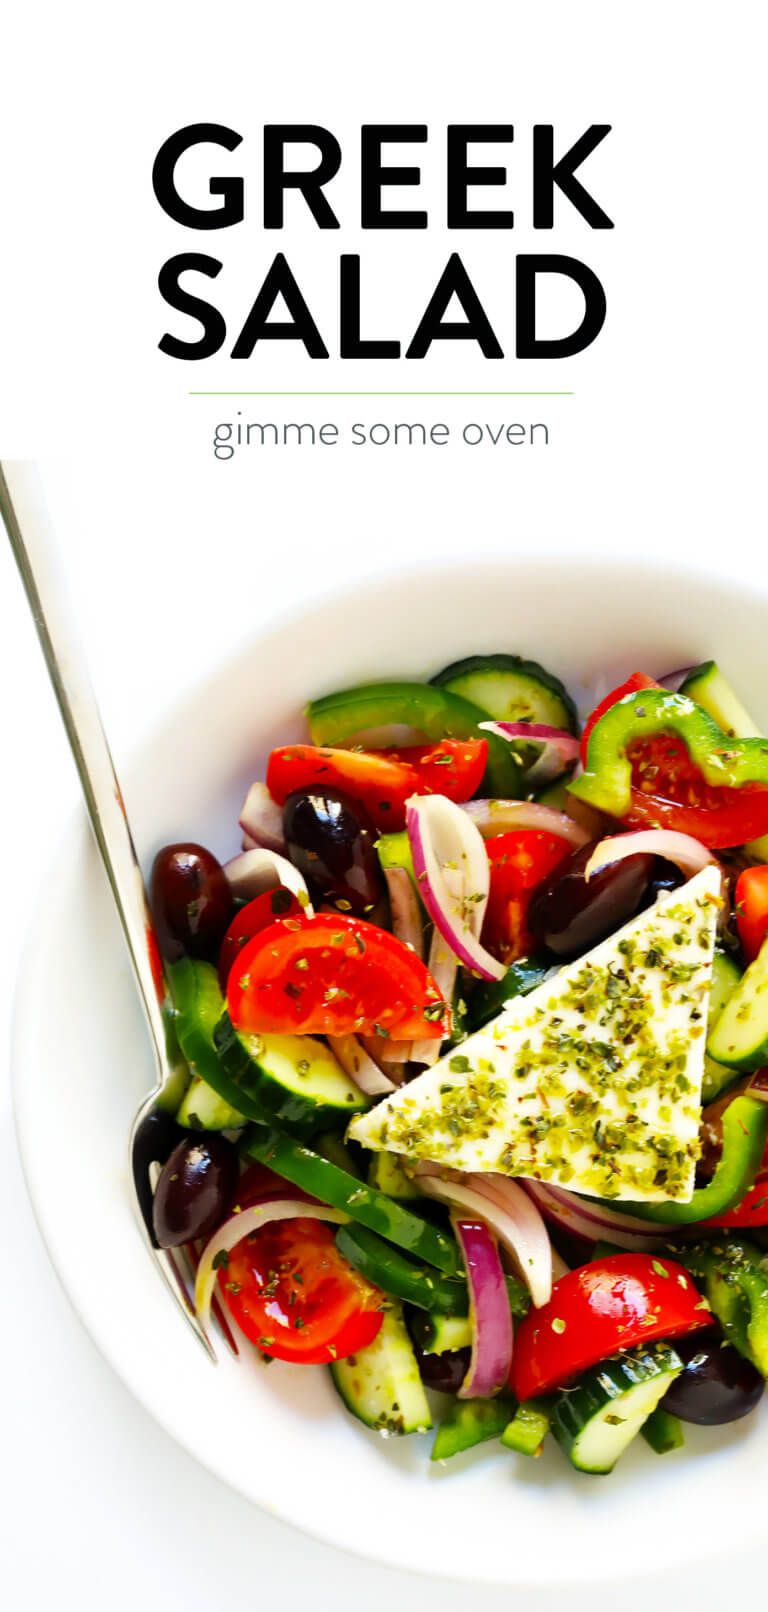 This Authentic Greek Salad Recipe Is Made Simply With Tomato Cucumber Green Pepper Red Onion O Greek Salad Recipe Authentic Greek Salad Recipes Greek Salad